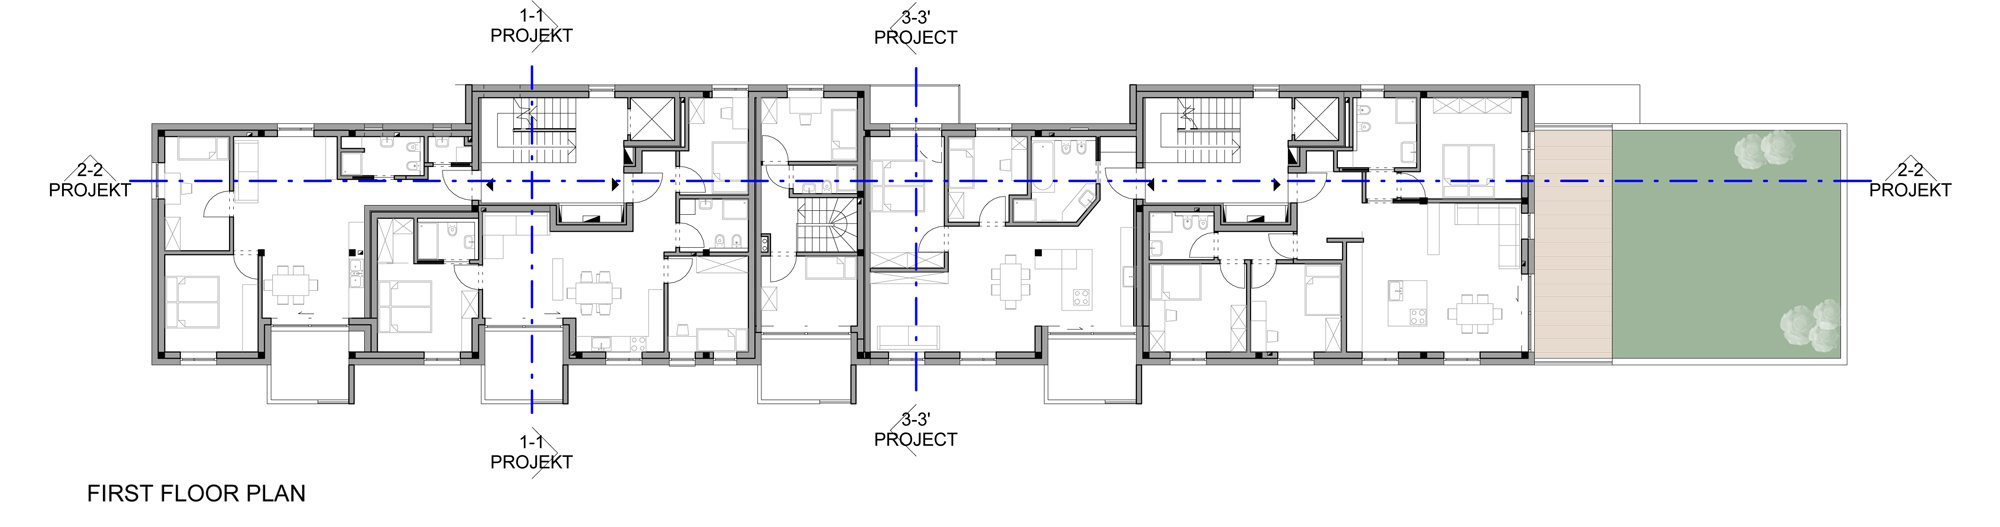 Plan of the First Floor }